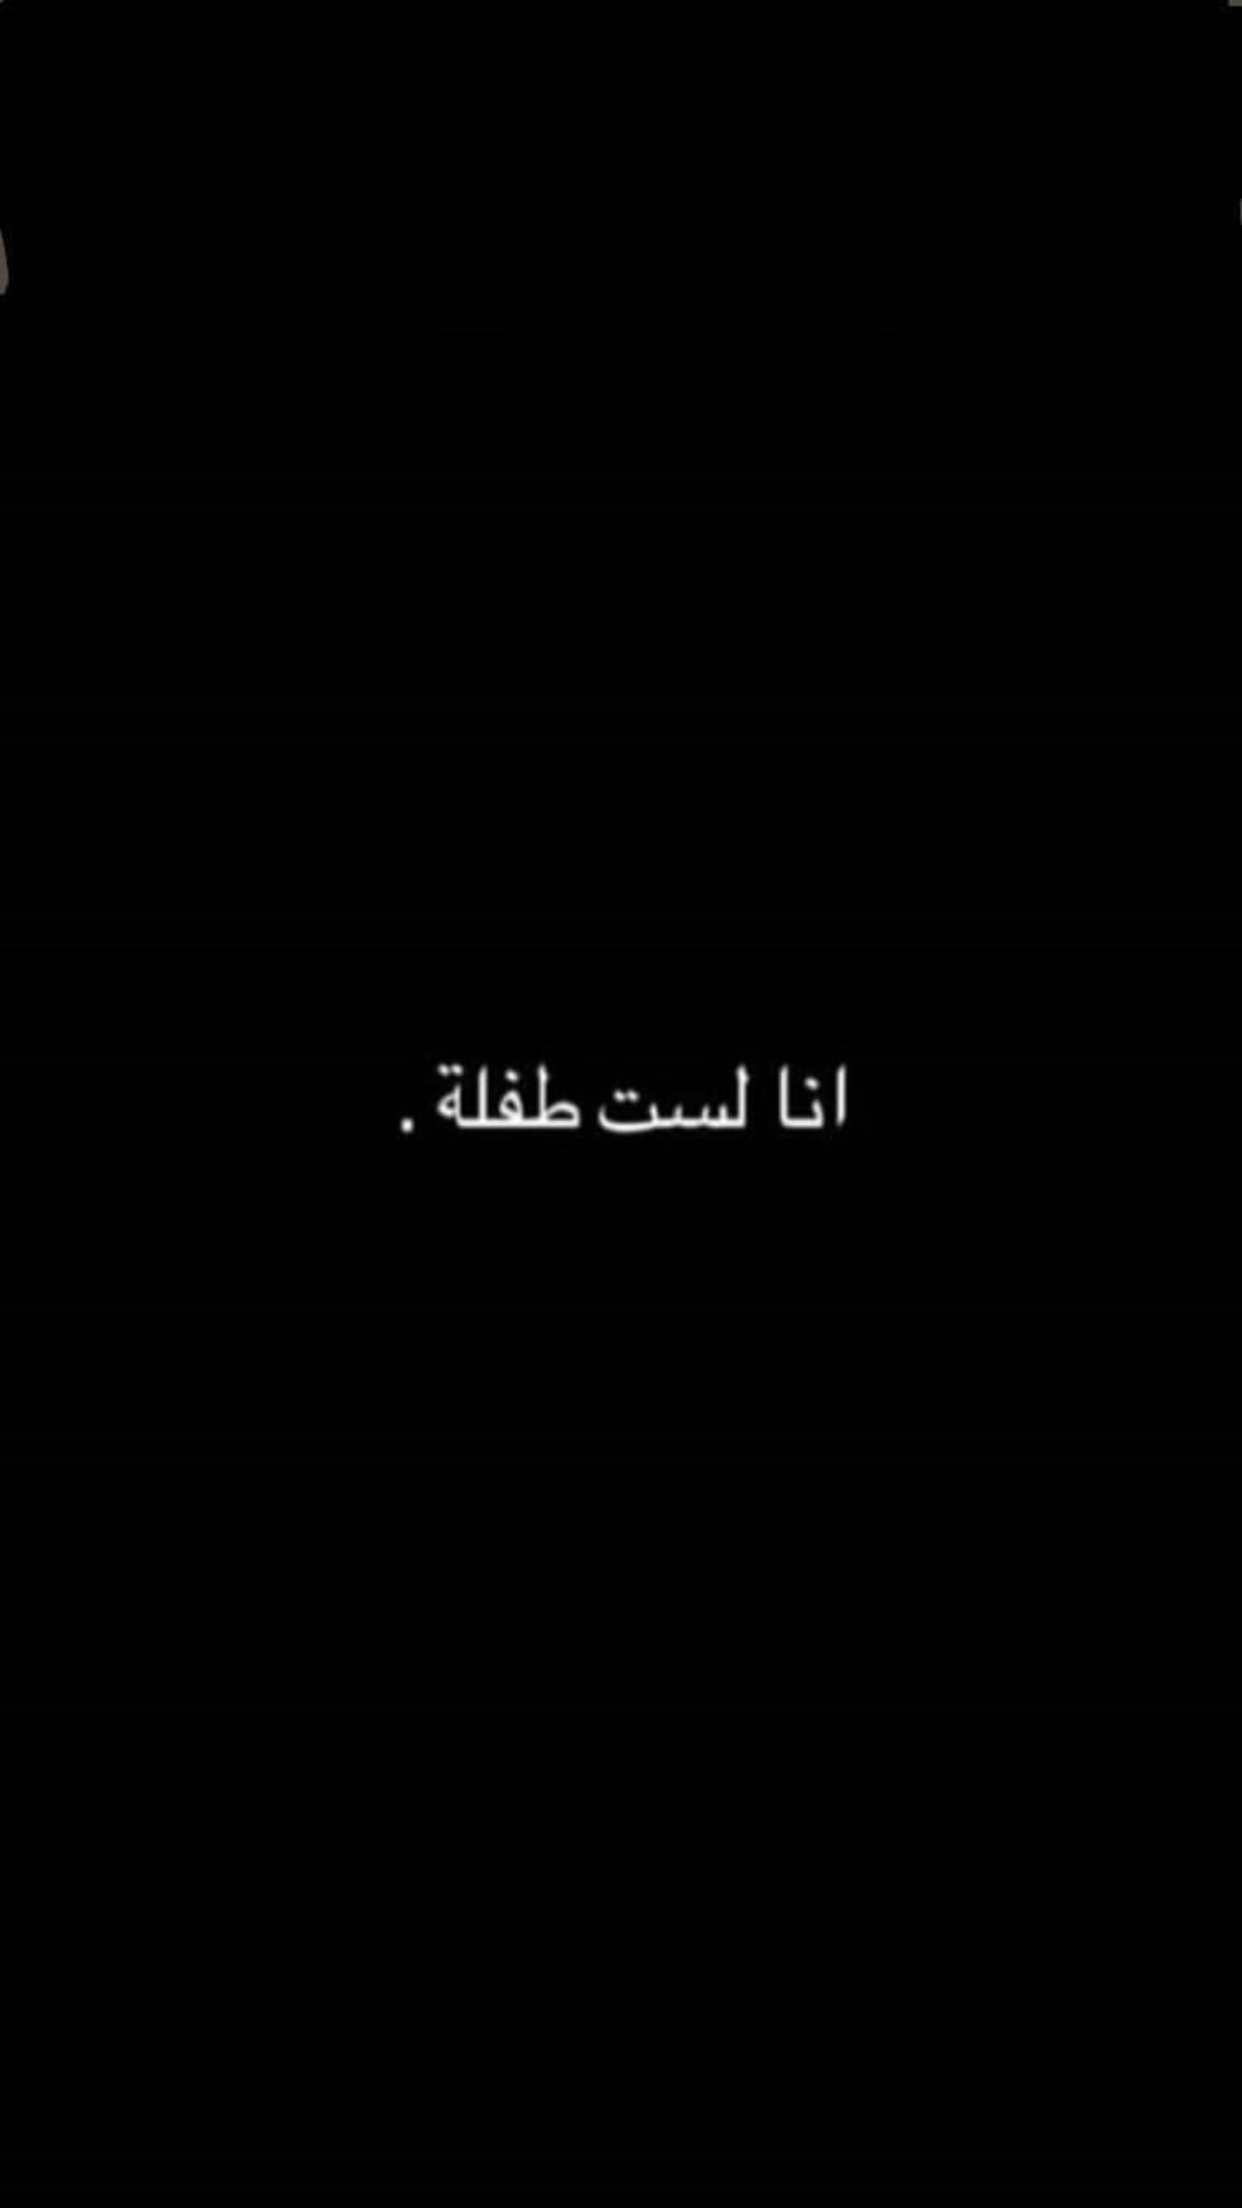 Pin By Huhu On Quotation Funny Arabic Quotes Photo Quotes Arabic Jokes